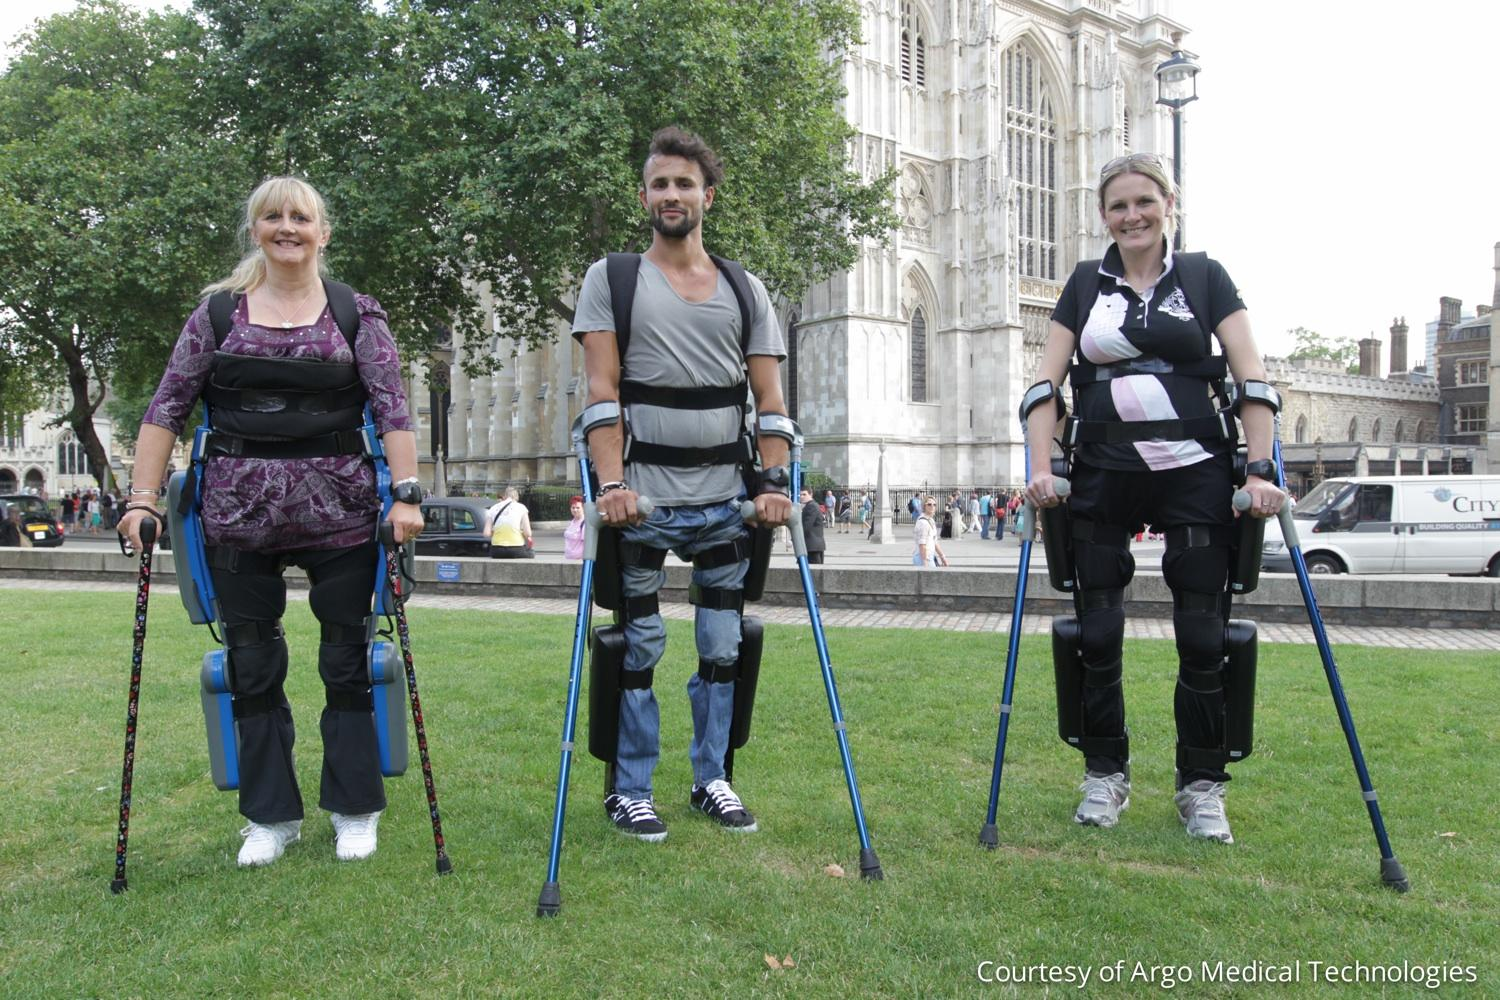 An Exoskeleton that allows Paraplegics to Walk Again